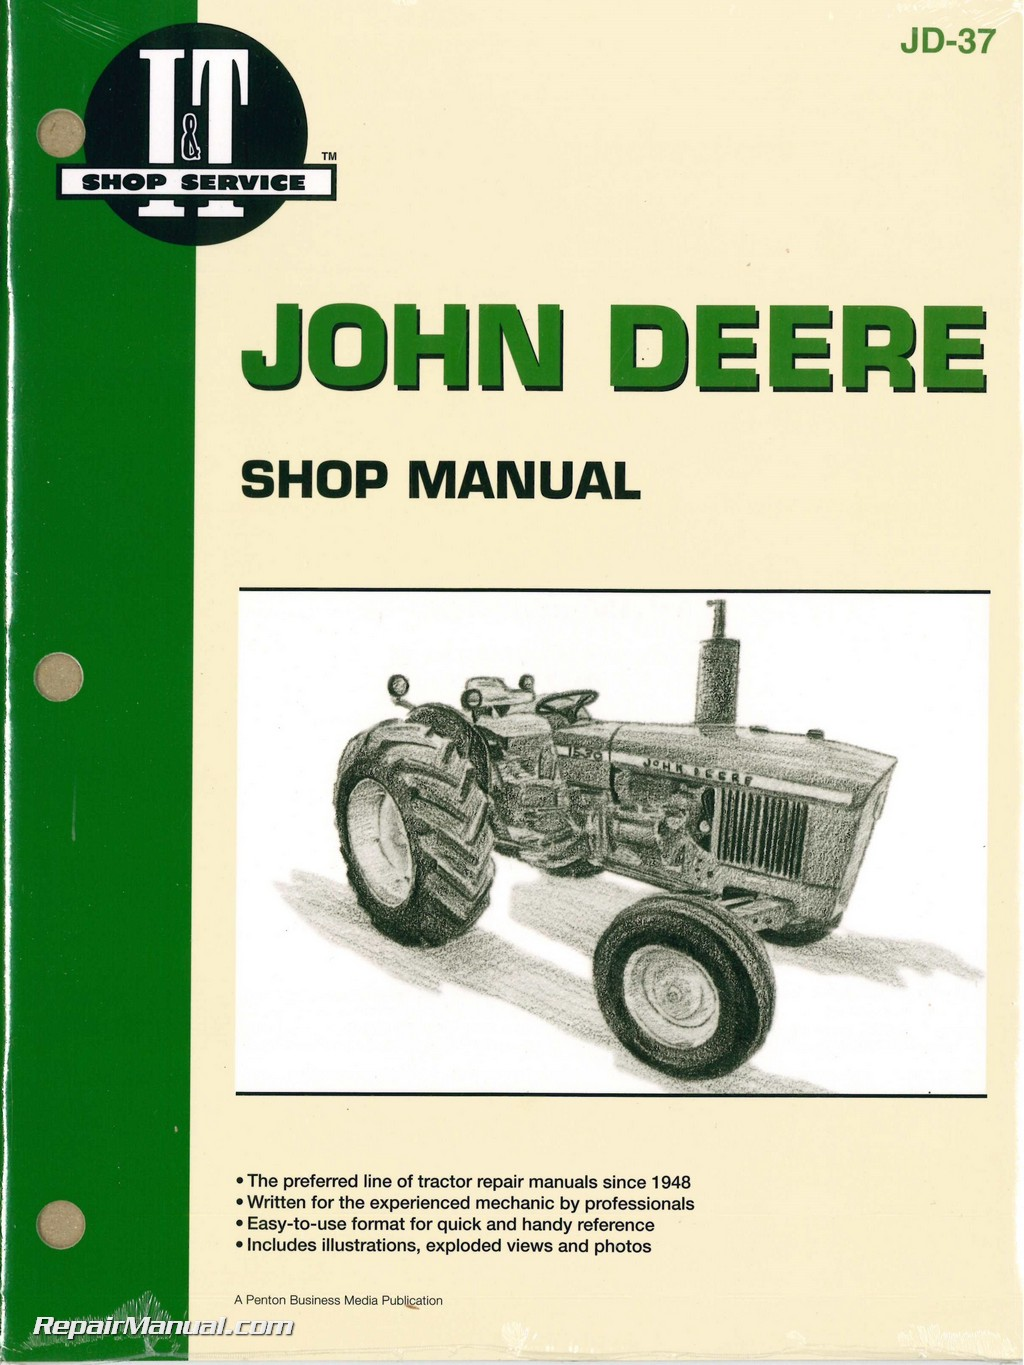 John Deere 1010 Tractor Alternator Wiring Diagram - Wiring ... on